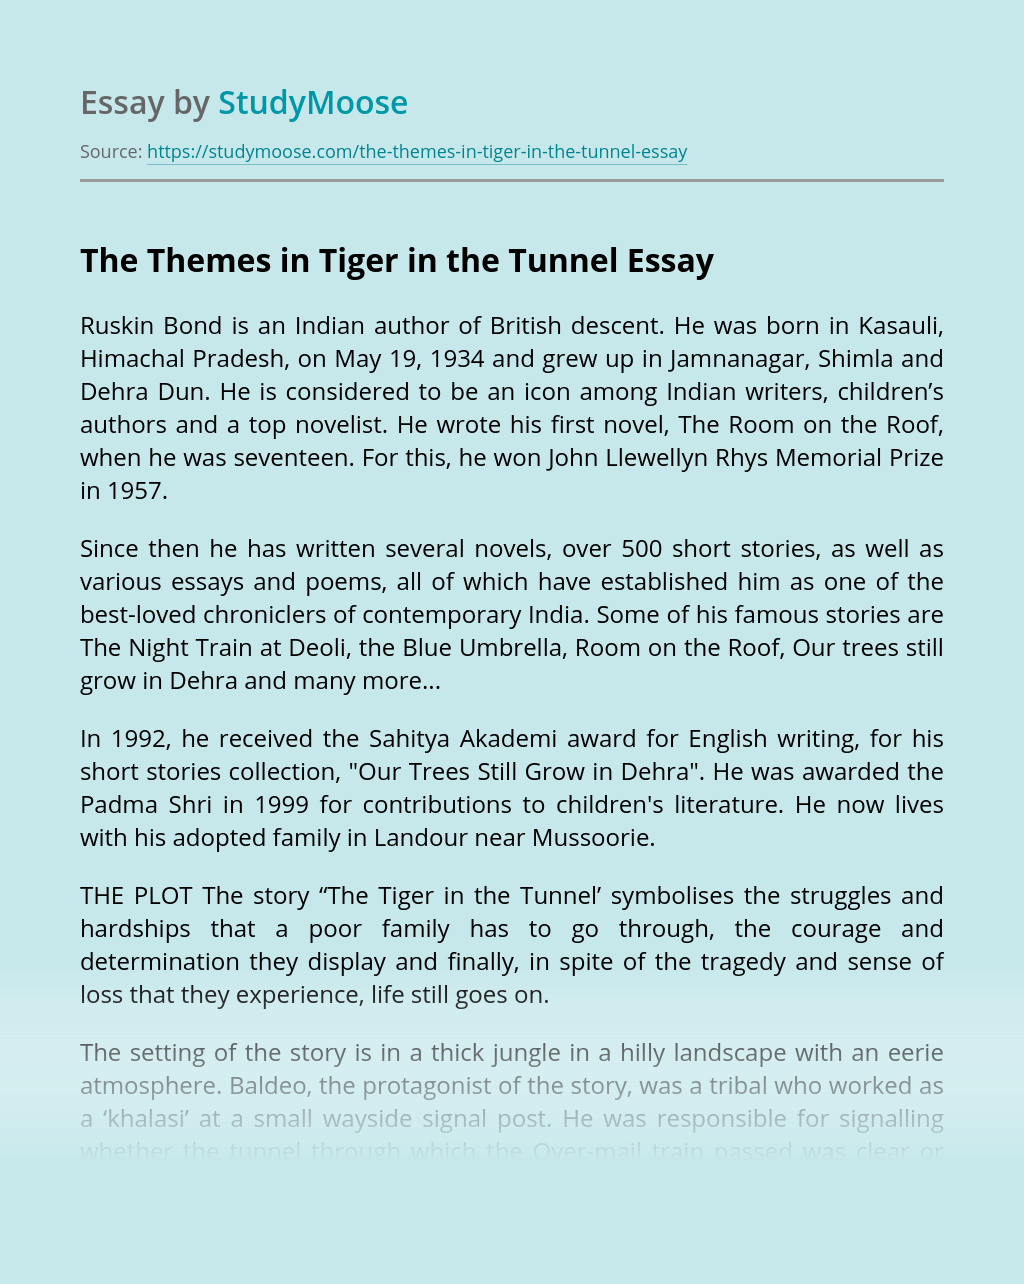 The Themes in Tiger in the Tunnel